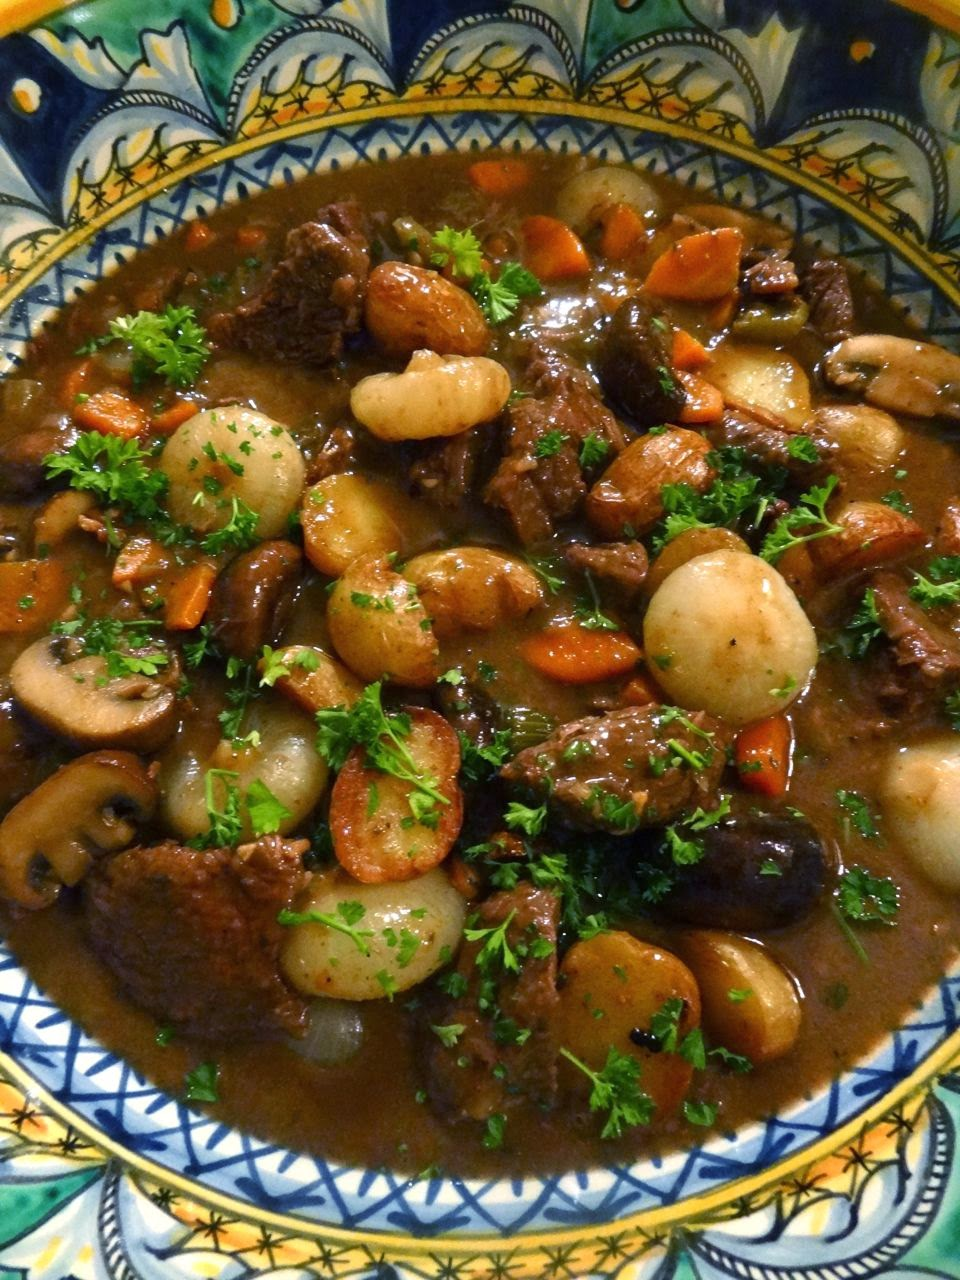 Scrumpdillyicious: Braised Beef & Mushroom Stew with Cipollini Onions